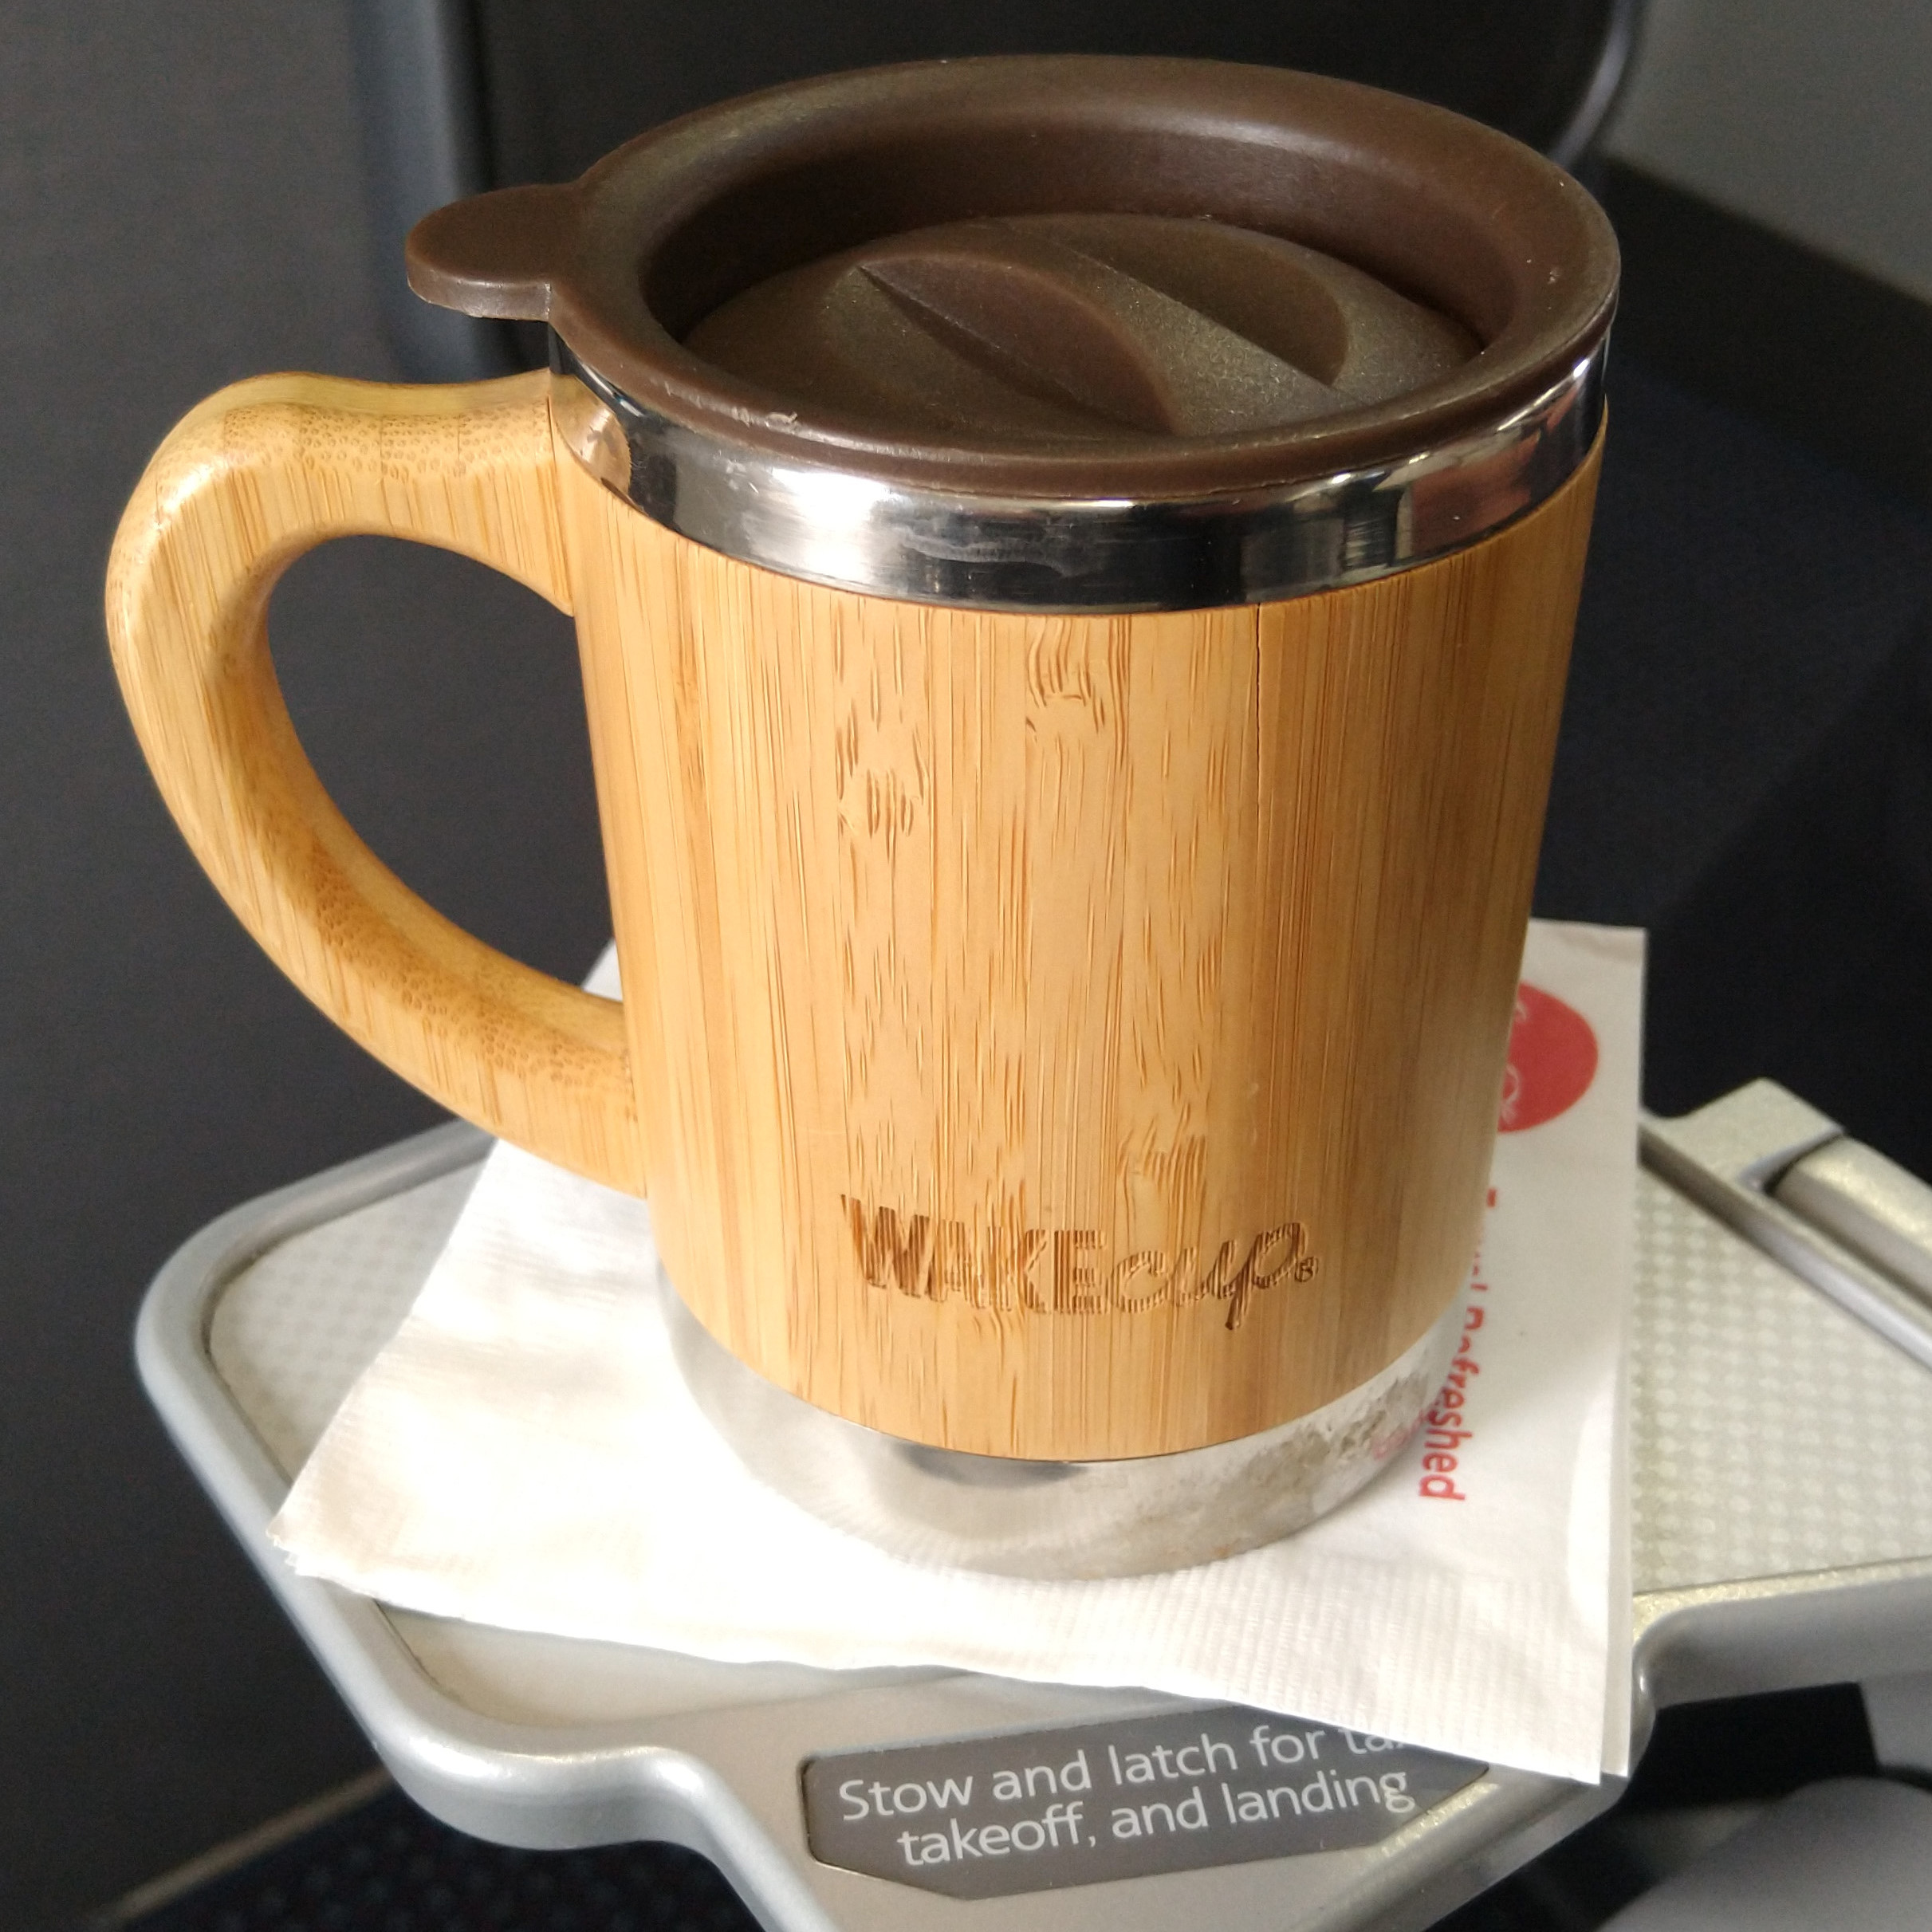 My Global WAKEcup, full of coffee I'd just made in the lounge and brought on the plane with me before my flight from Chicago to Boston.